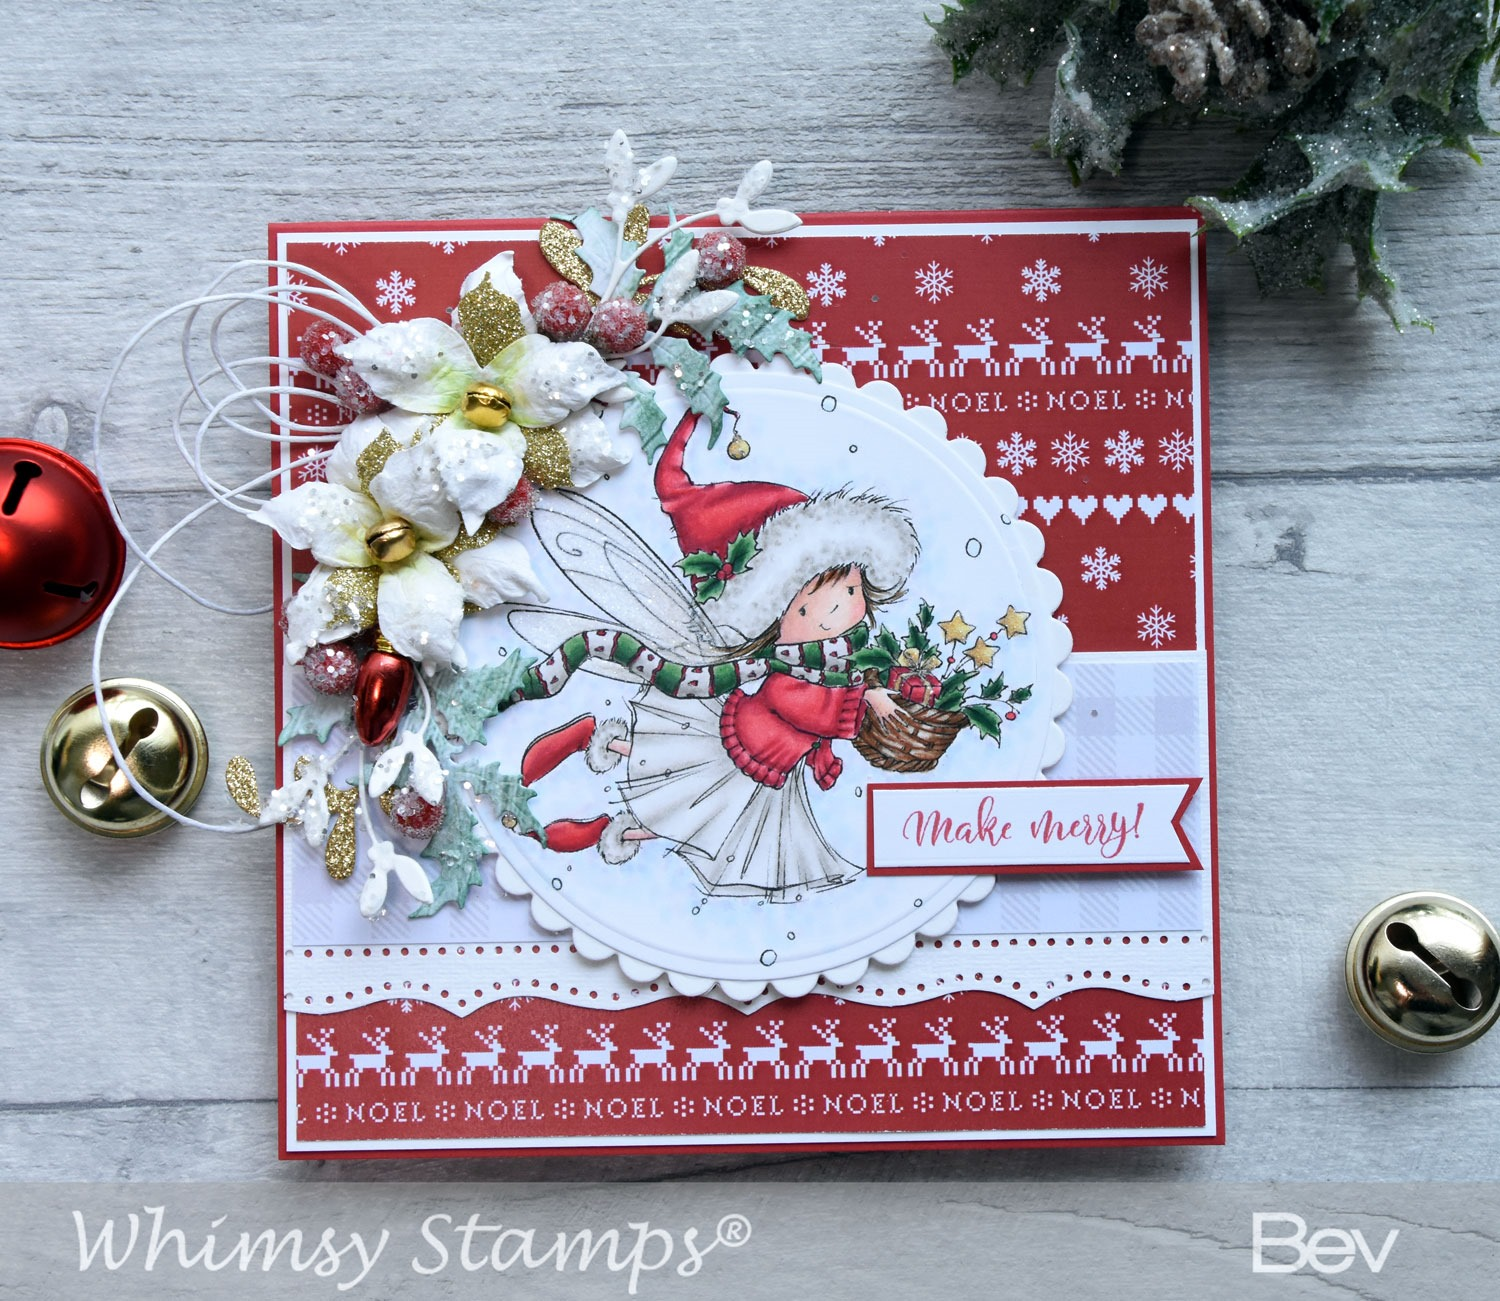 [bev-rochester-whimsy-merry-wishes-tls%5B2%5D]